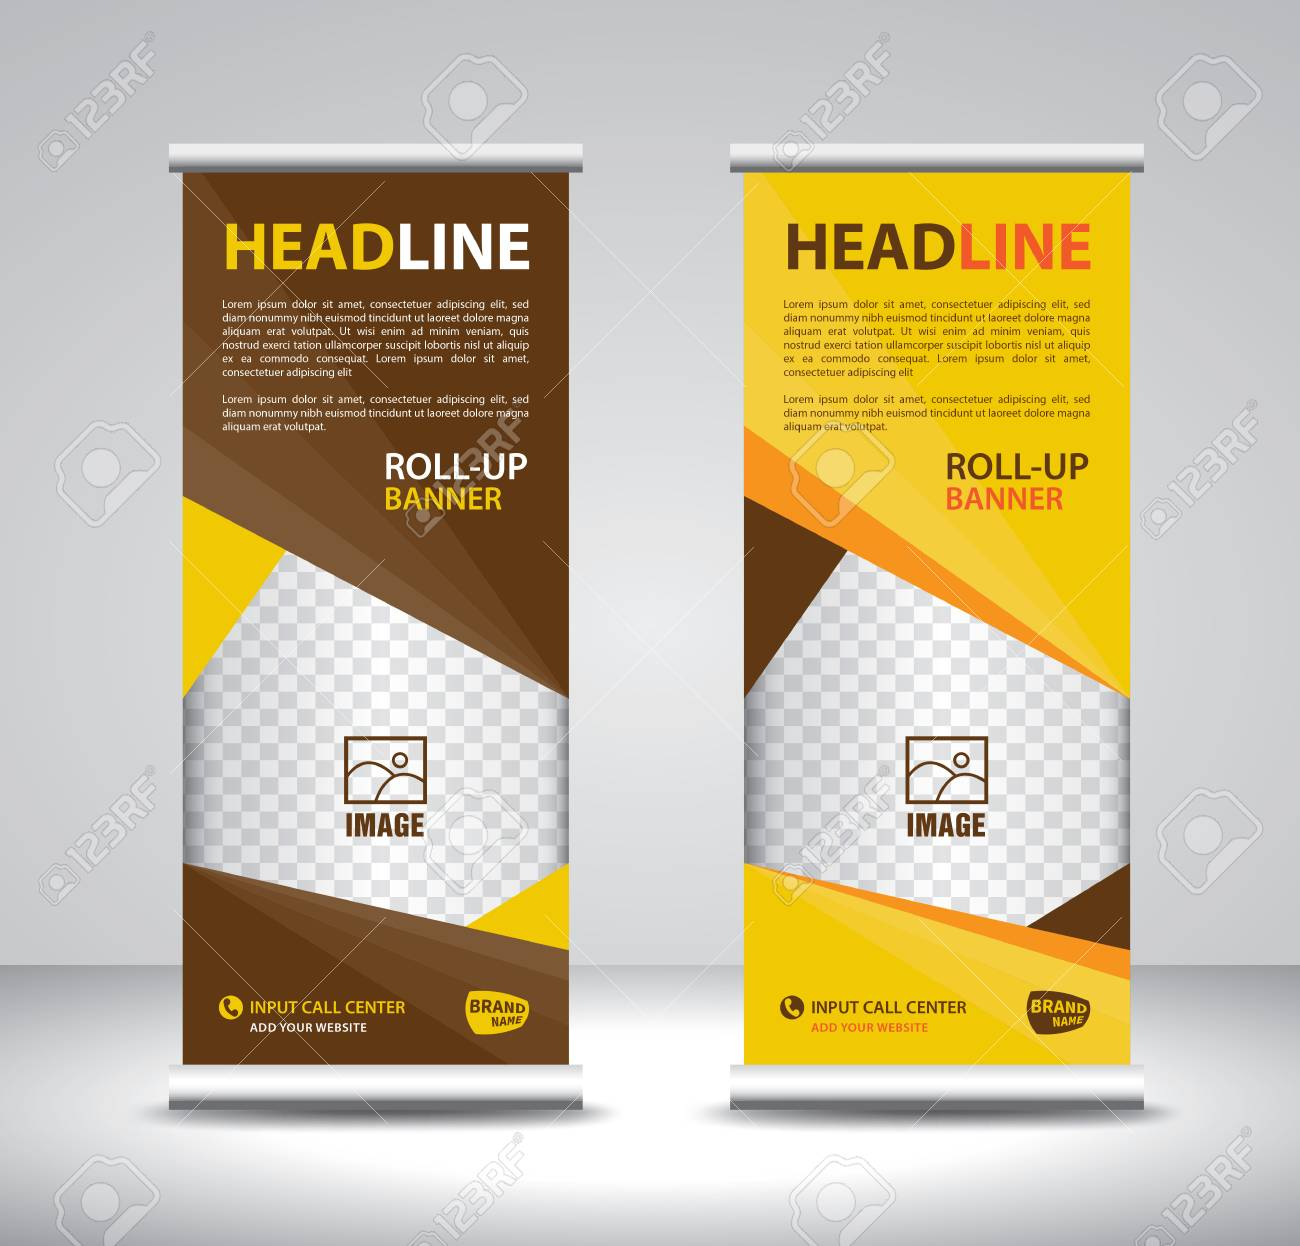 Roll Up Banner Template Vector Banner Stand Exhibition Design